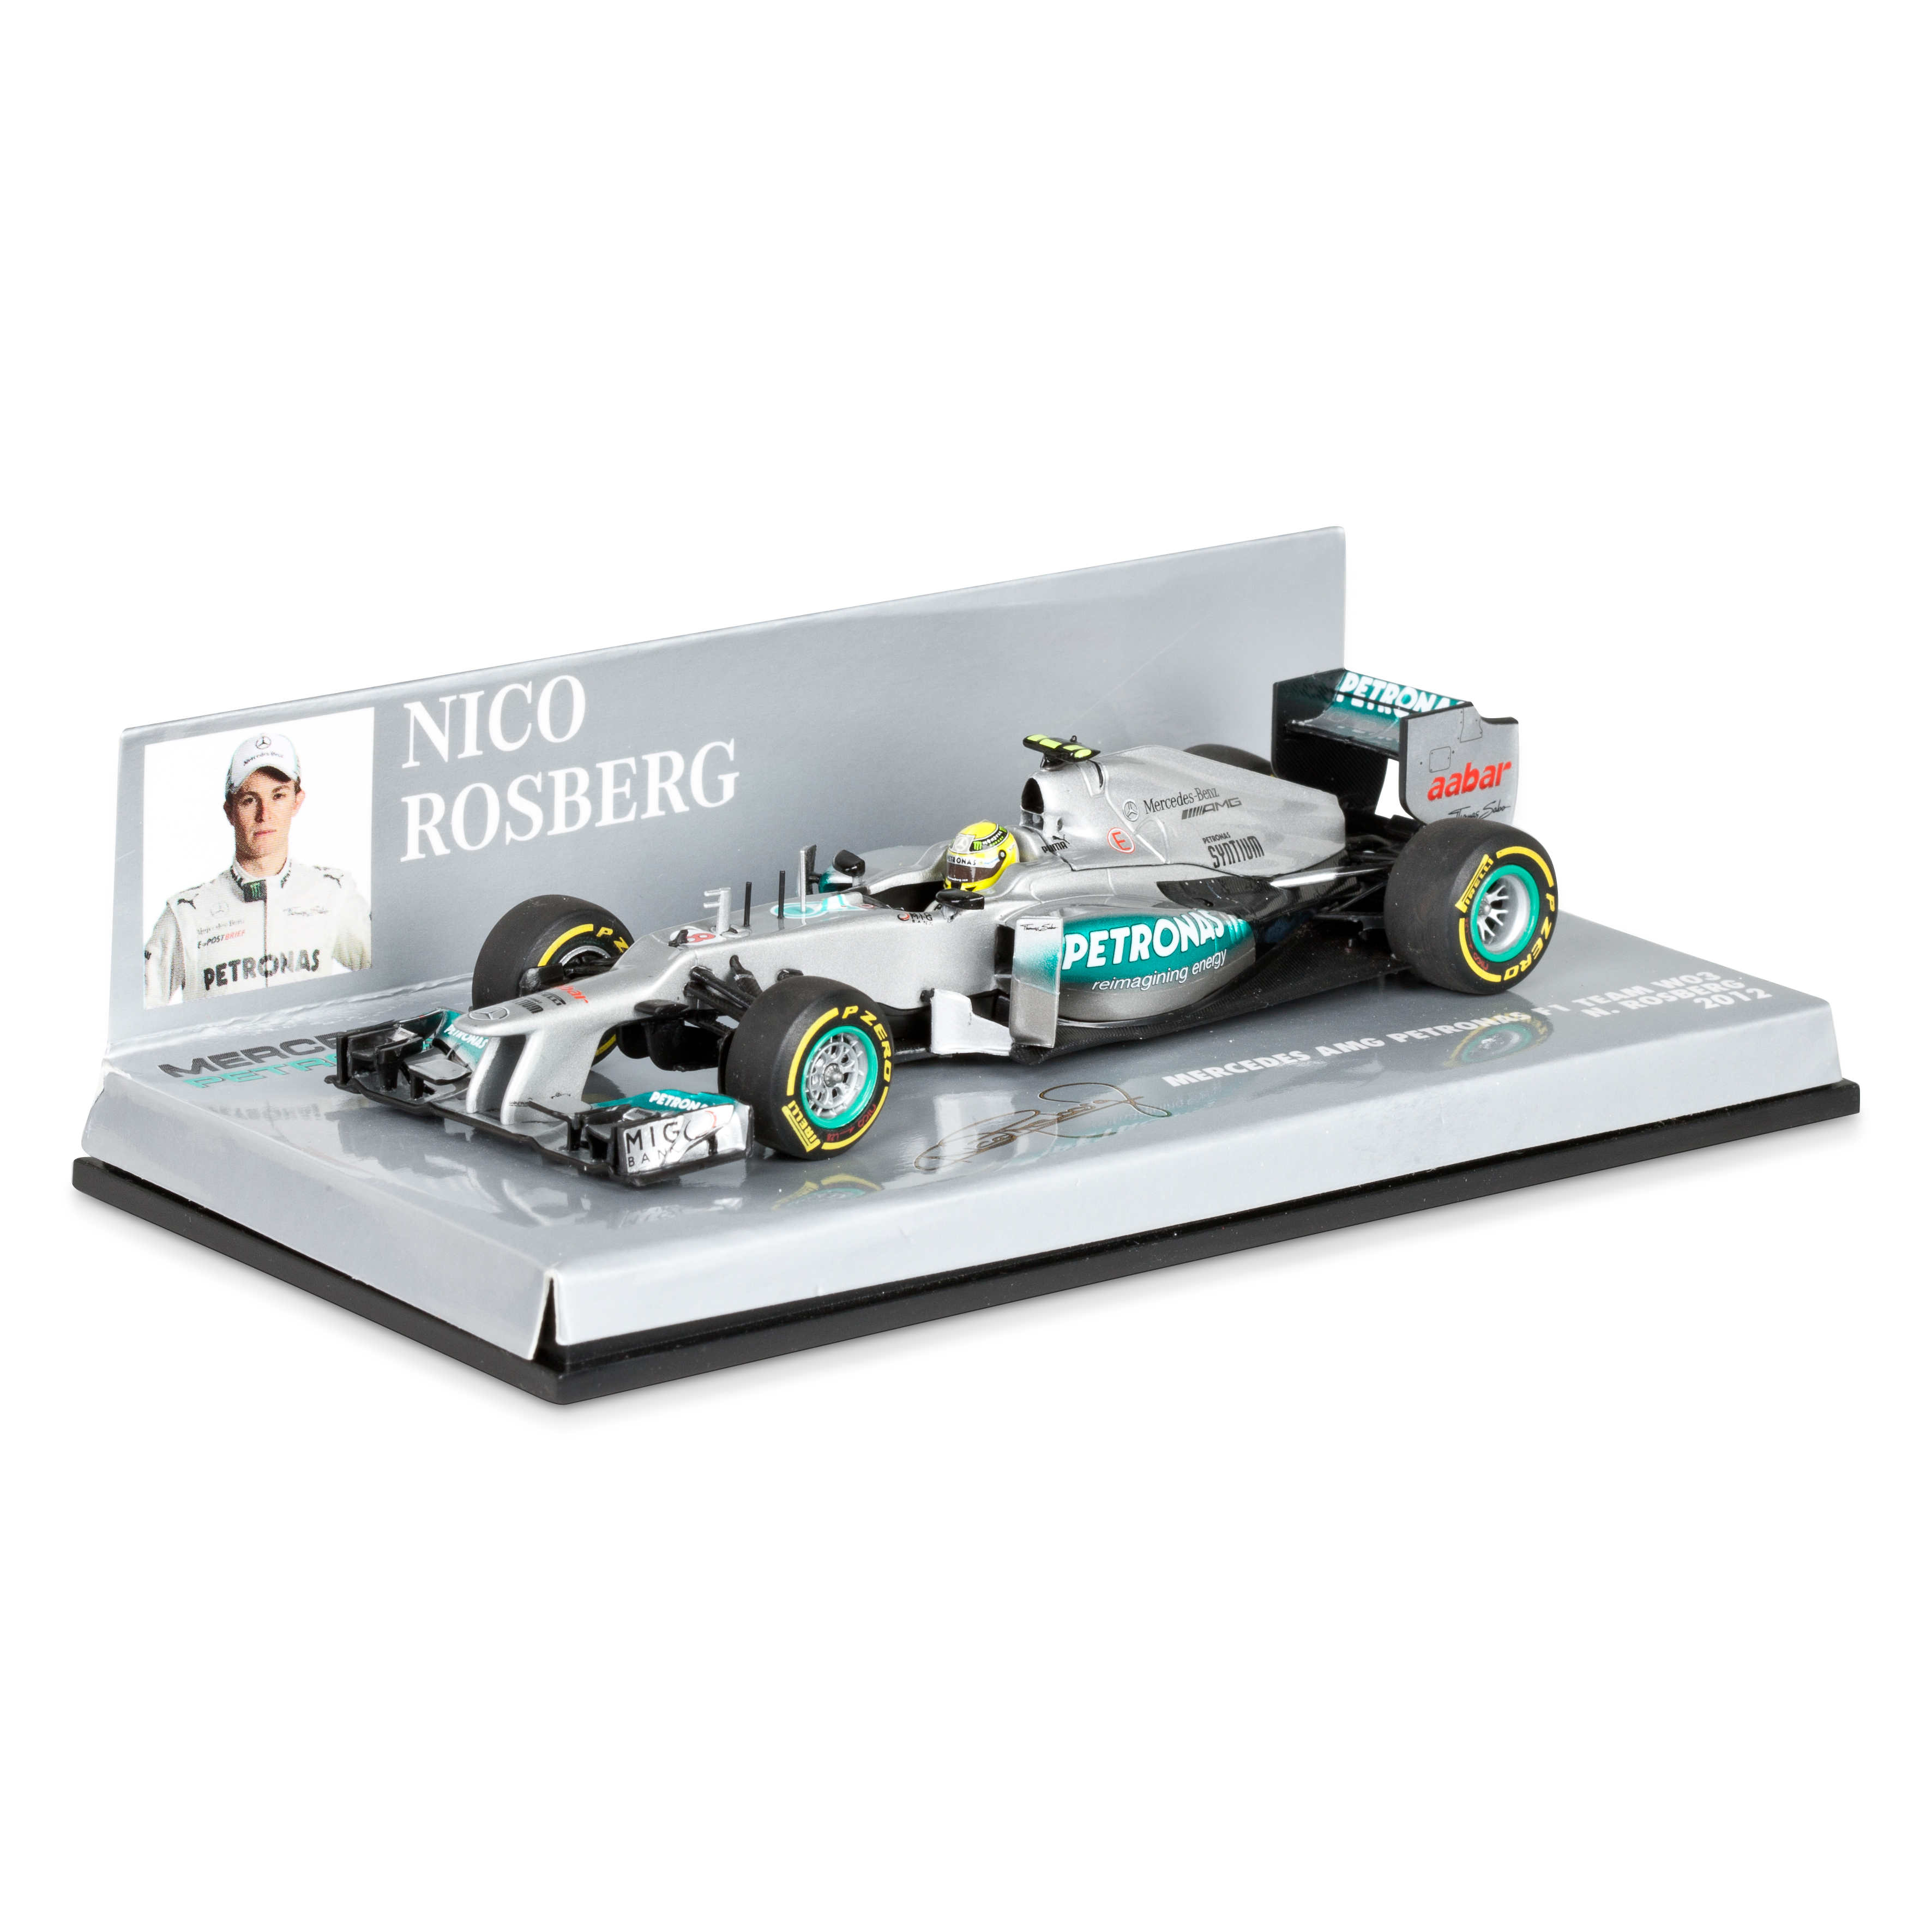 Mercedes AMG Petronas F1 Team W03 2012 Nico Rosberg 1:43 Scale